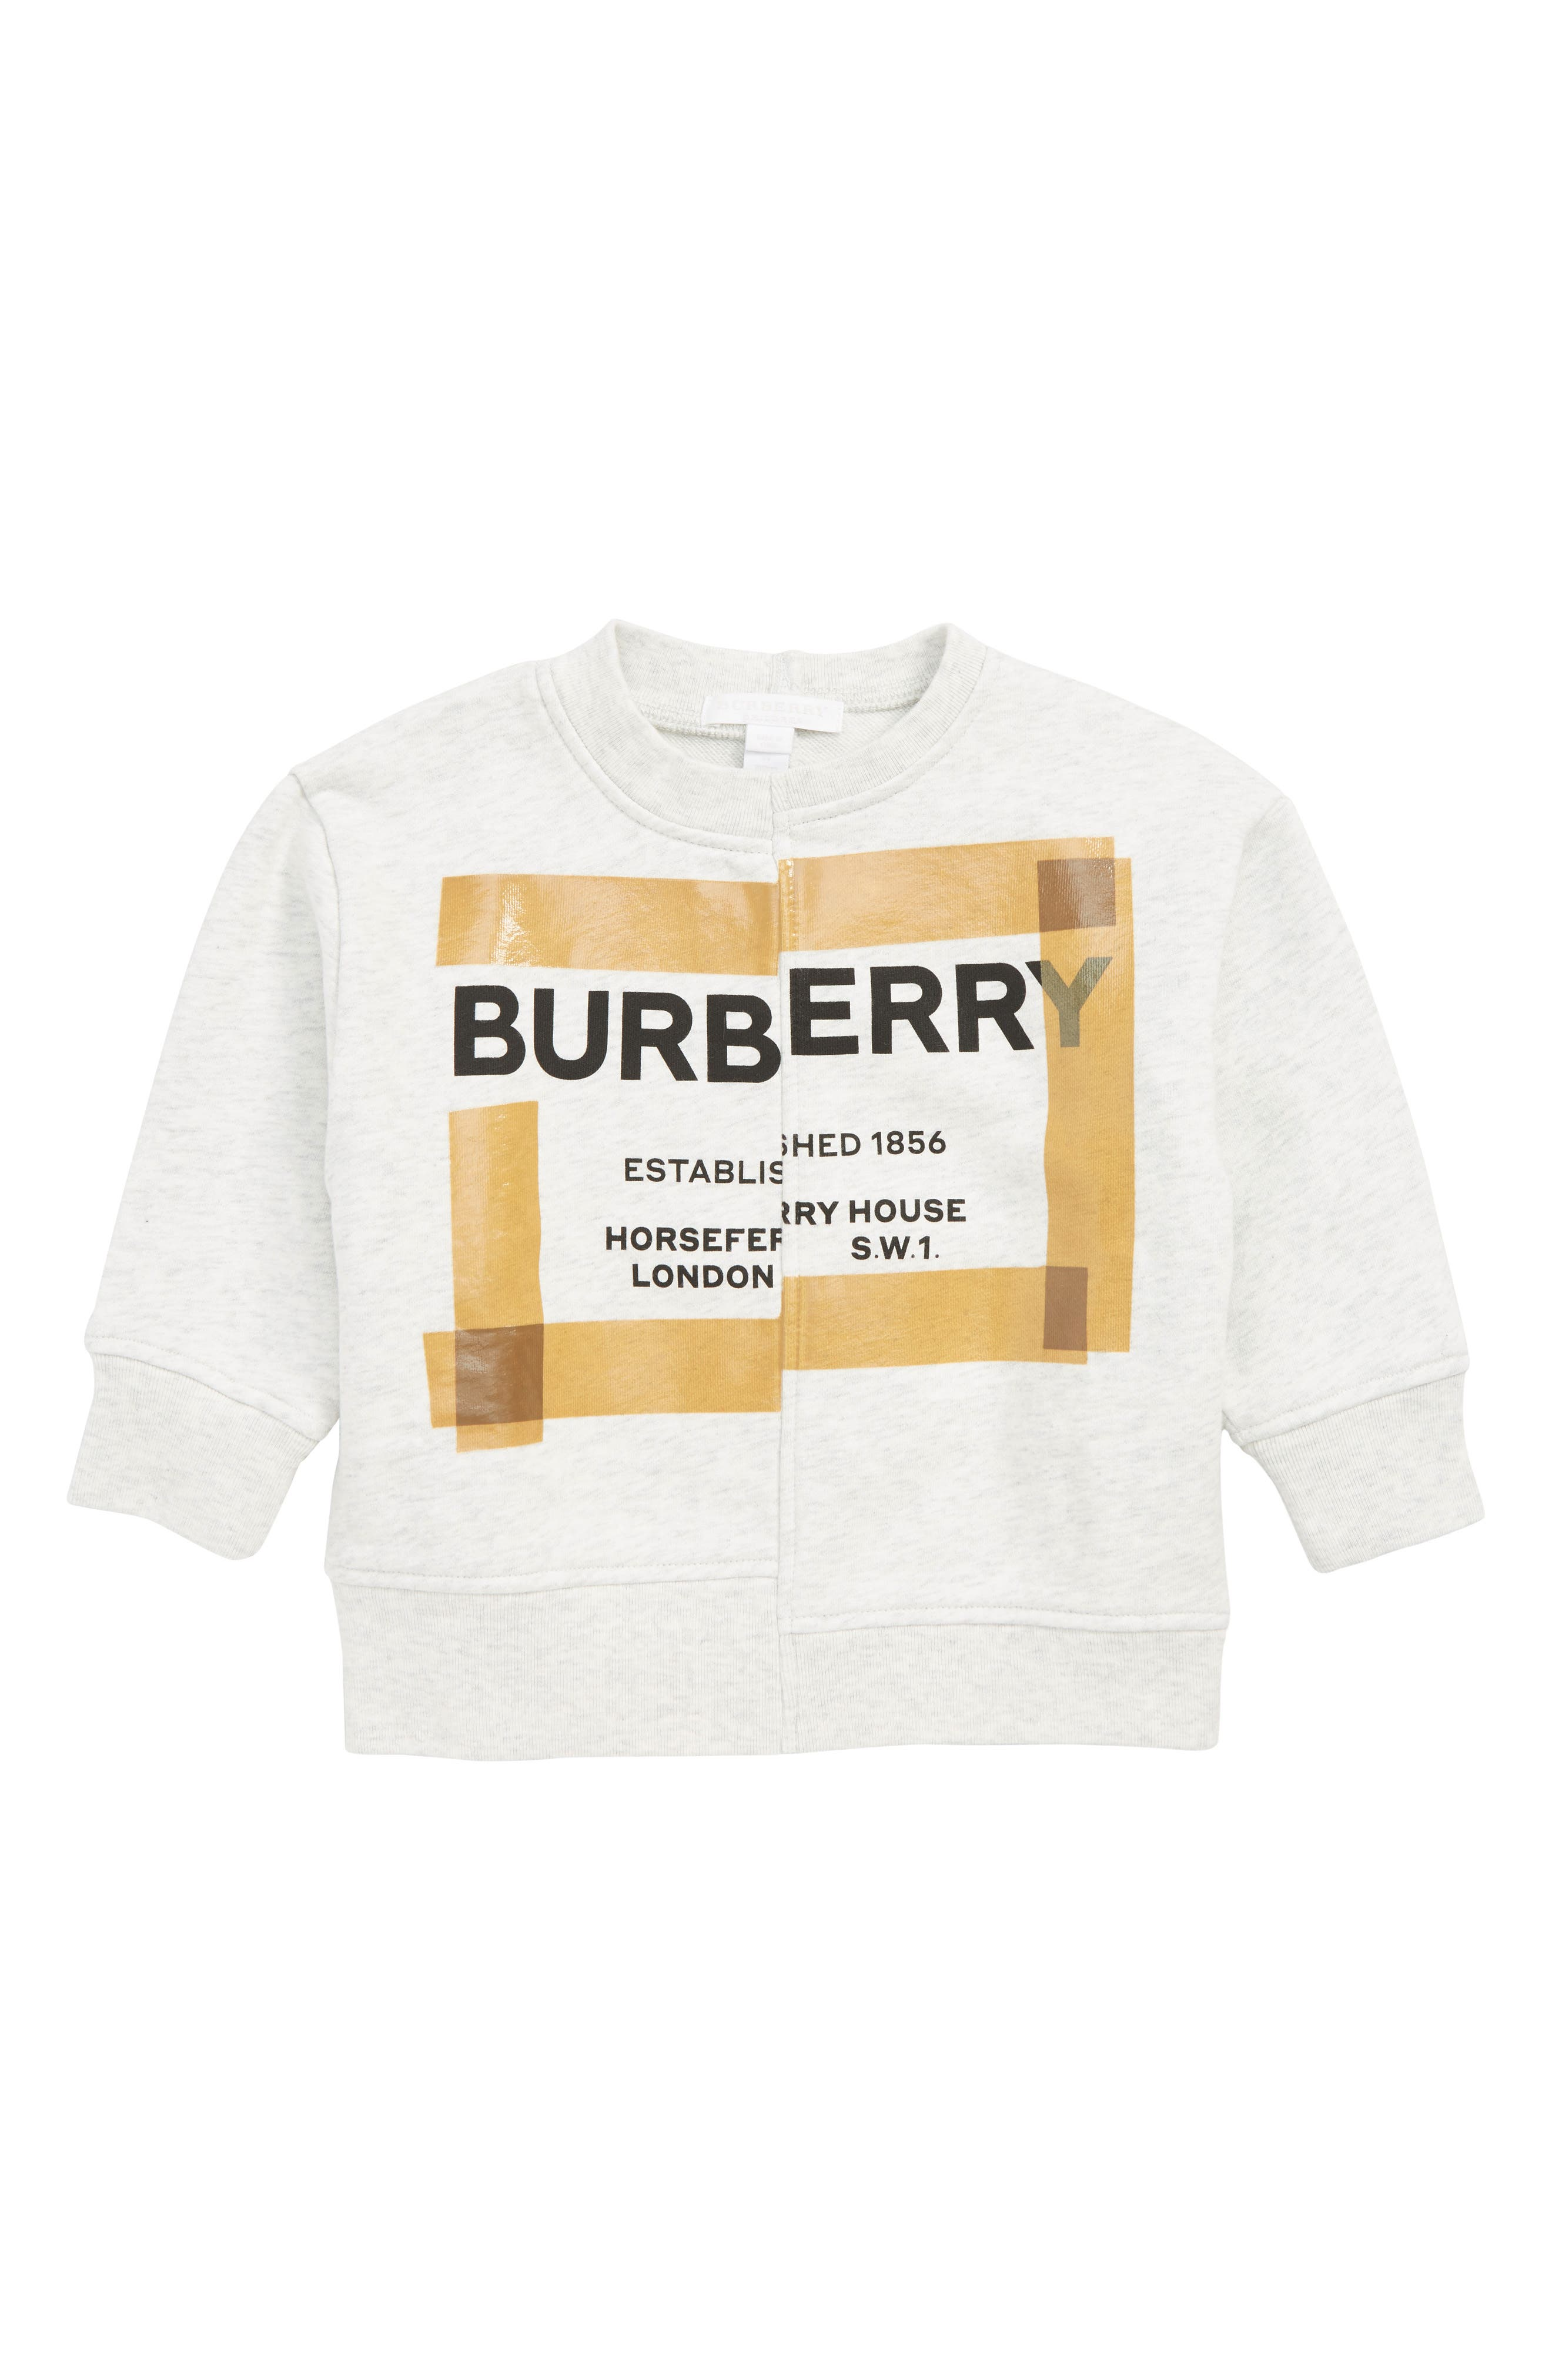 BURBERRY, Patch Logo Sweatshirt, Main thumbnail 1, color, WHITE MELANGE